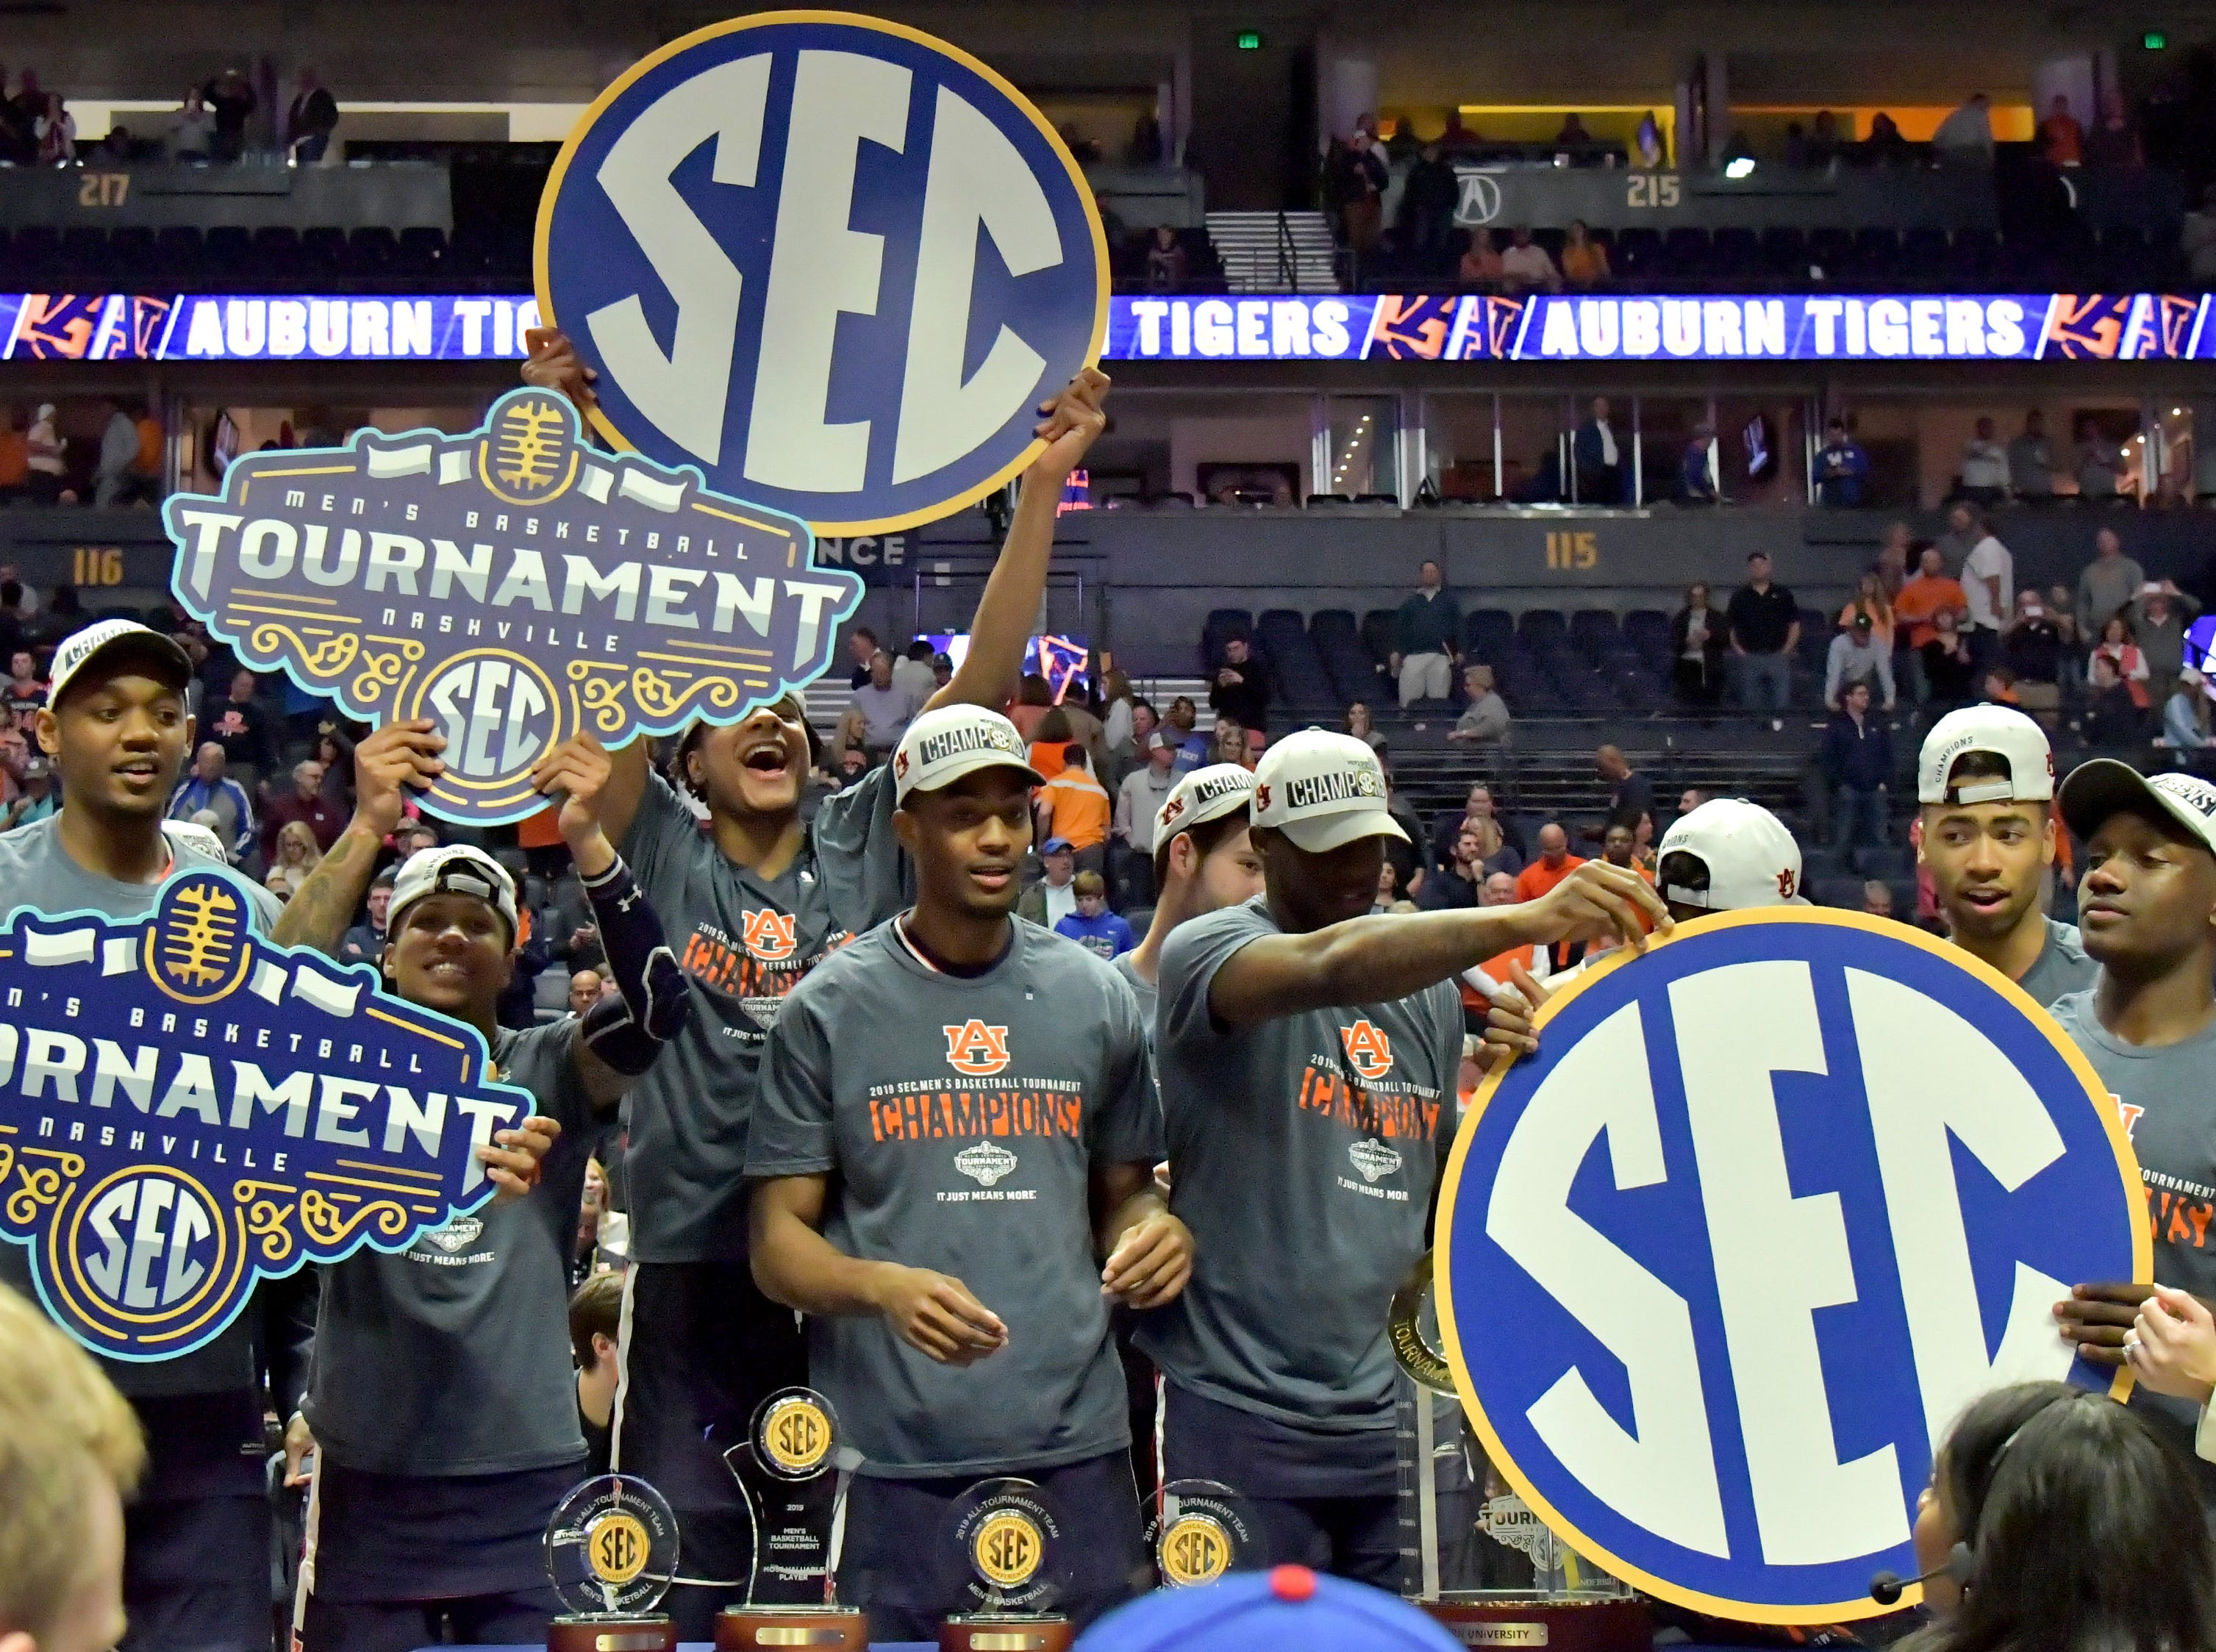 Mar 17, 2019; Nashville, TN, USA; Auburn Tigers teammates celebrate prior to the trophy presentation following the championship game between the Tennessee Volunteers and the Auburn Tigers  in the SEC conference tournament at Bridgestone Arena. Auburn won 84-64. Mandatory Credit: Jim Brown-USA TODAY Sports